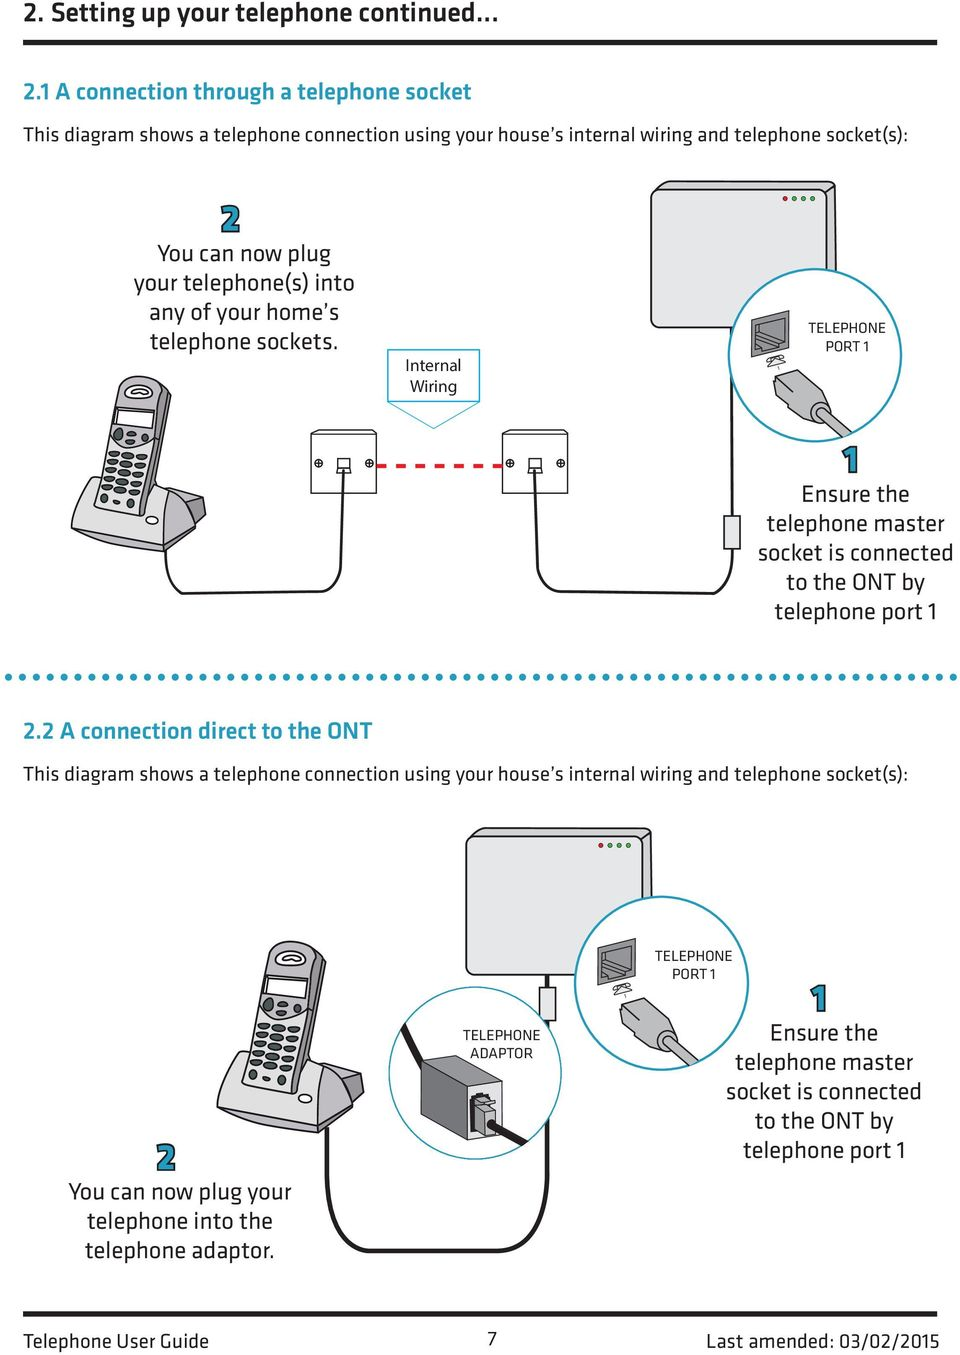 Telephone User Guide Pdf Wiring Up A Plug Into Any Of Your Home S Sockets Internal 1 Port